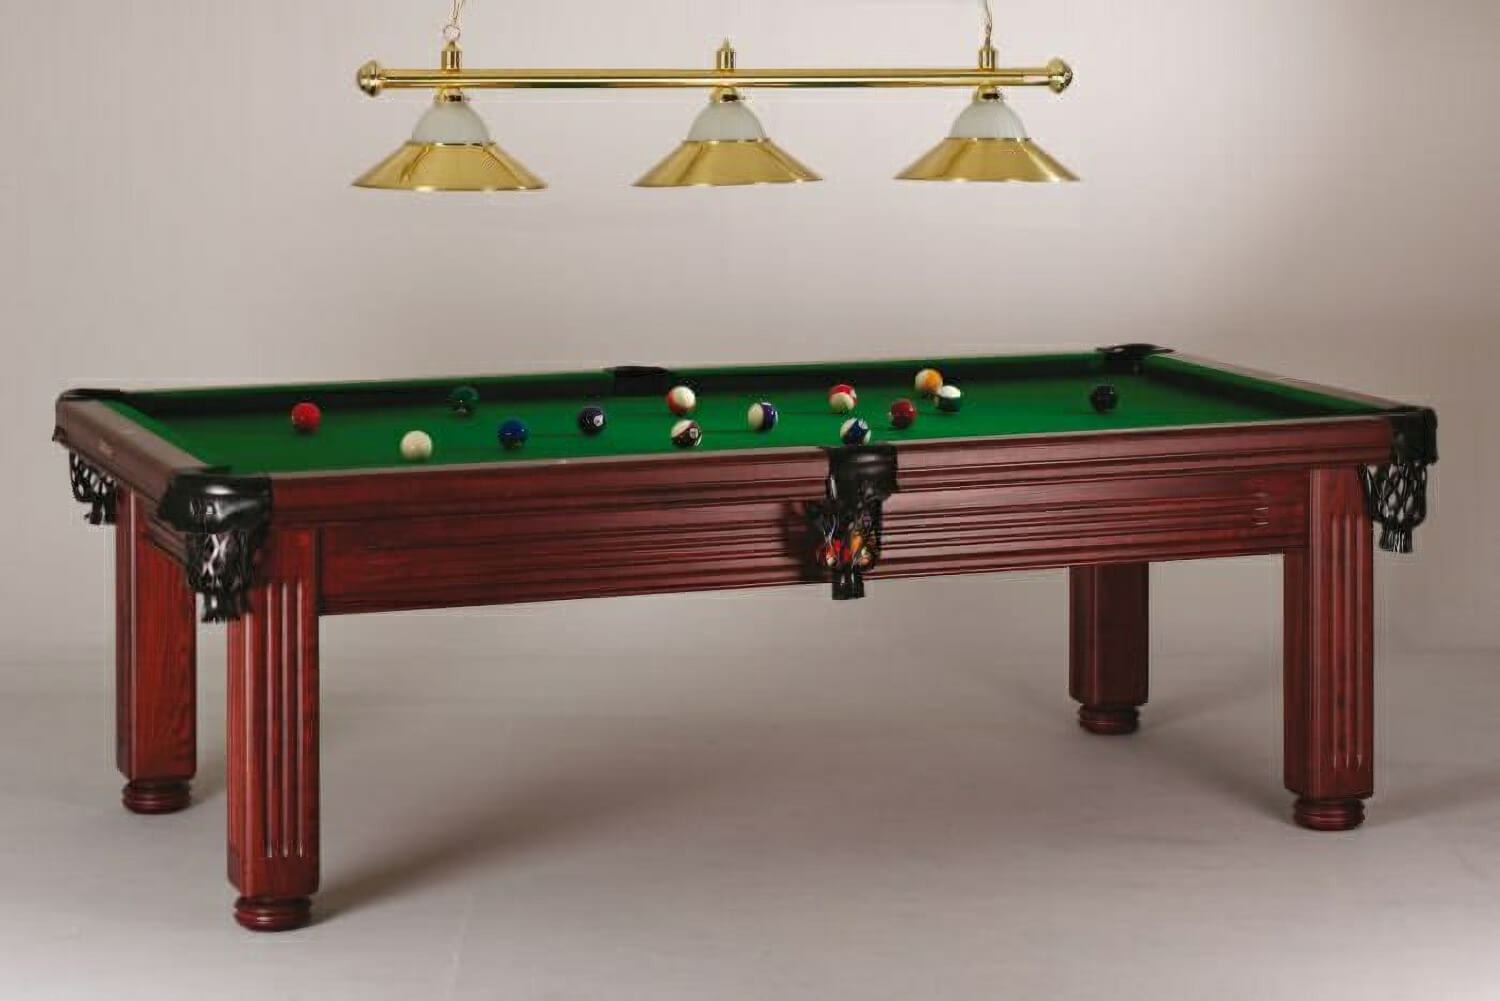 Oporto Freeplay American Pool Table 6 Ft 7 Ft 8 Ft